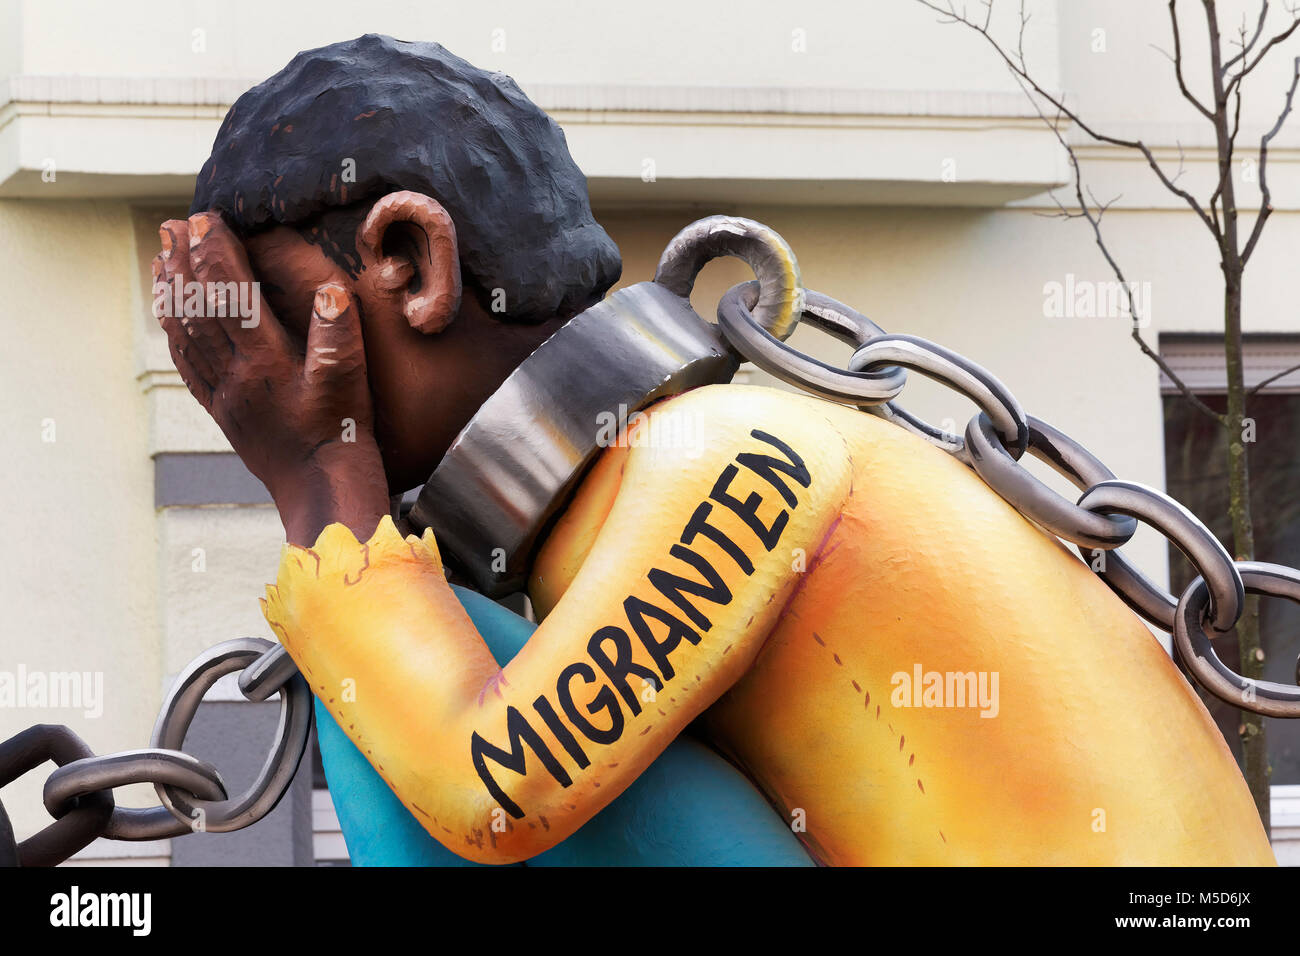 Migrant from Africa, double chained, slavery sponsored by the EU, political caricature, motto caravan during Carnival - Stock Image